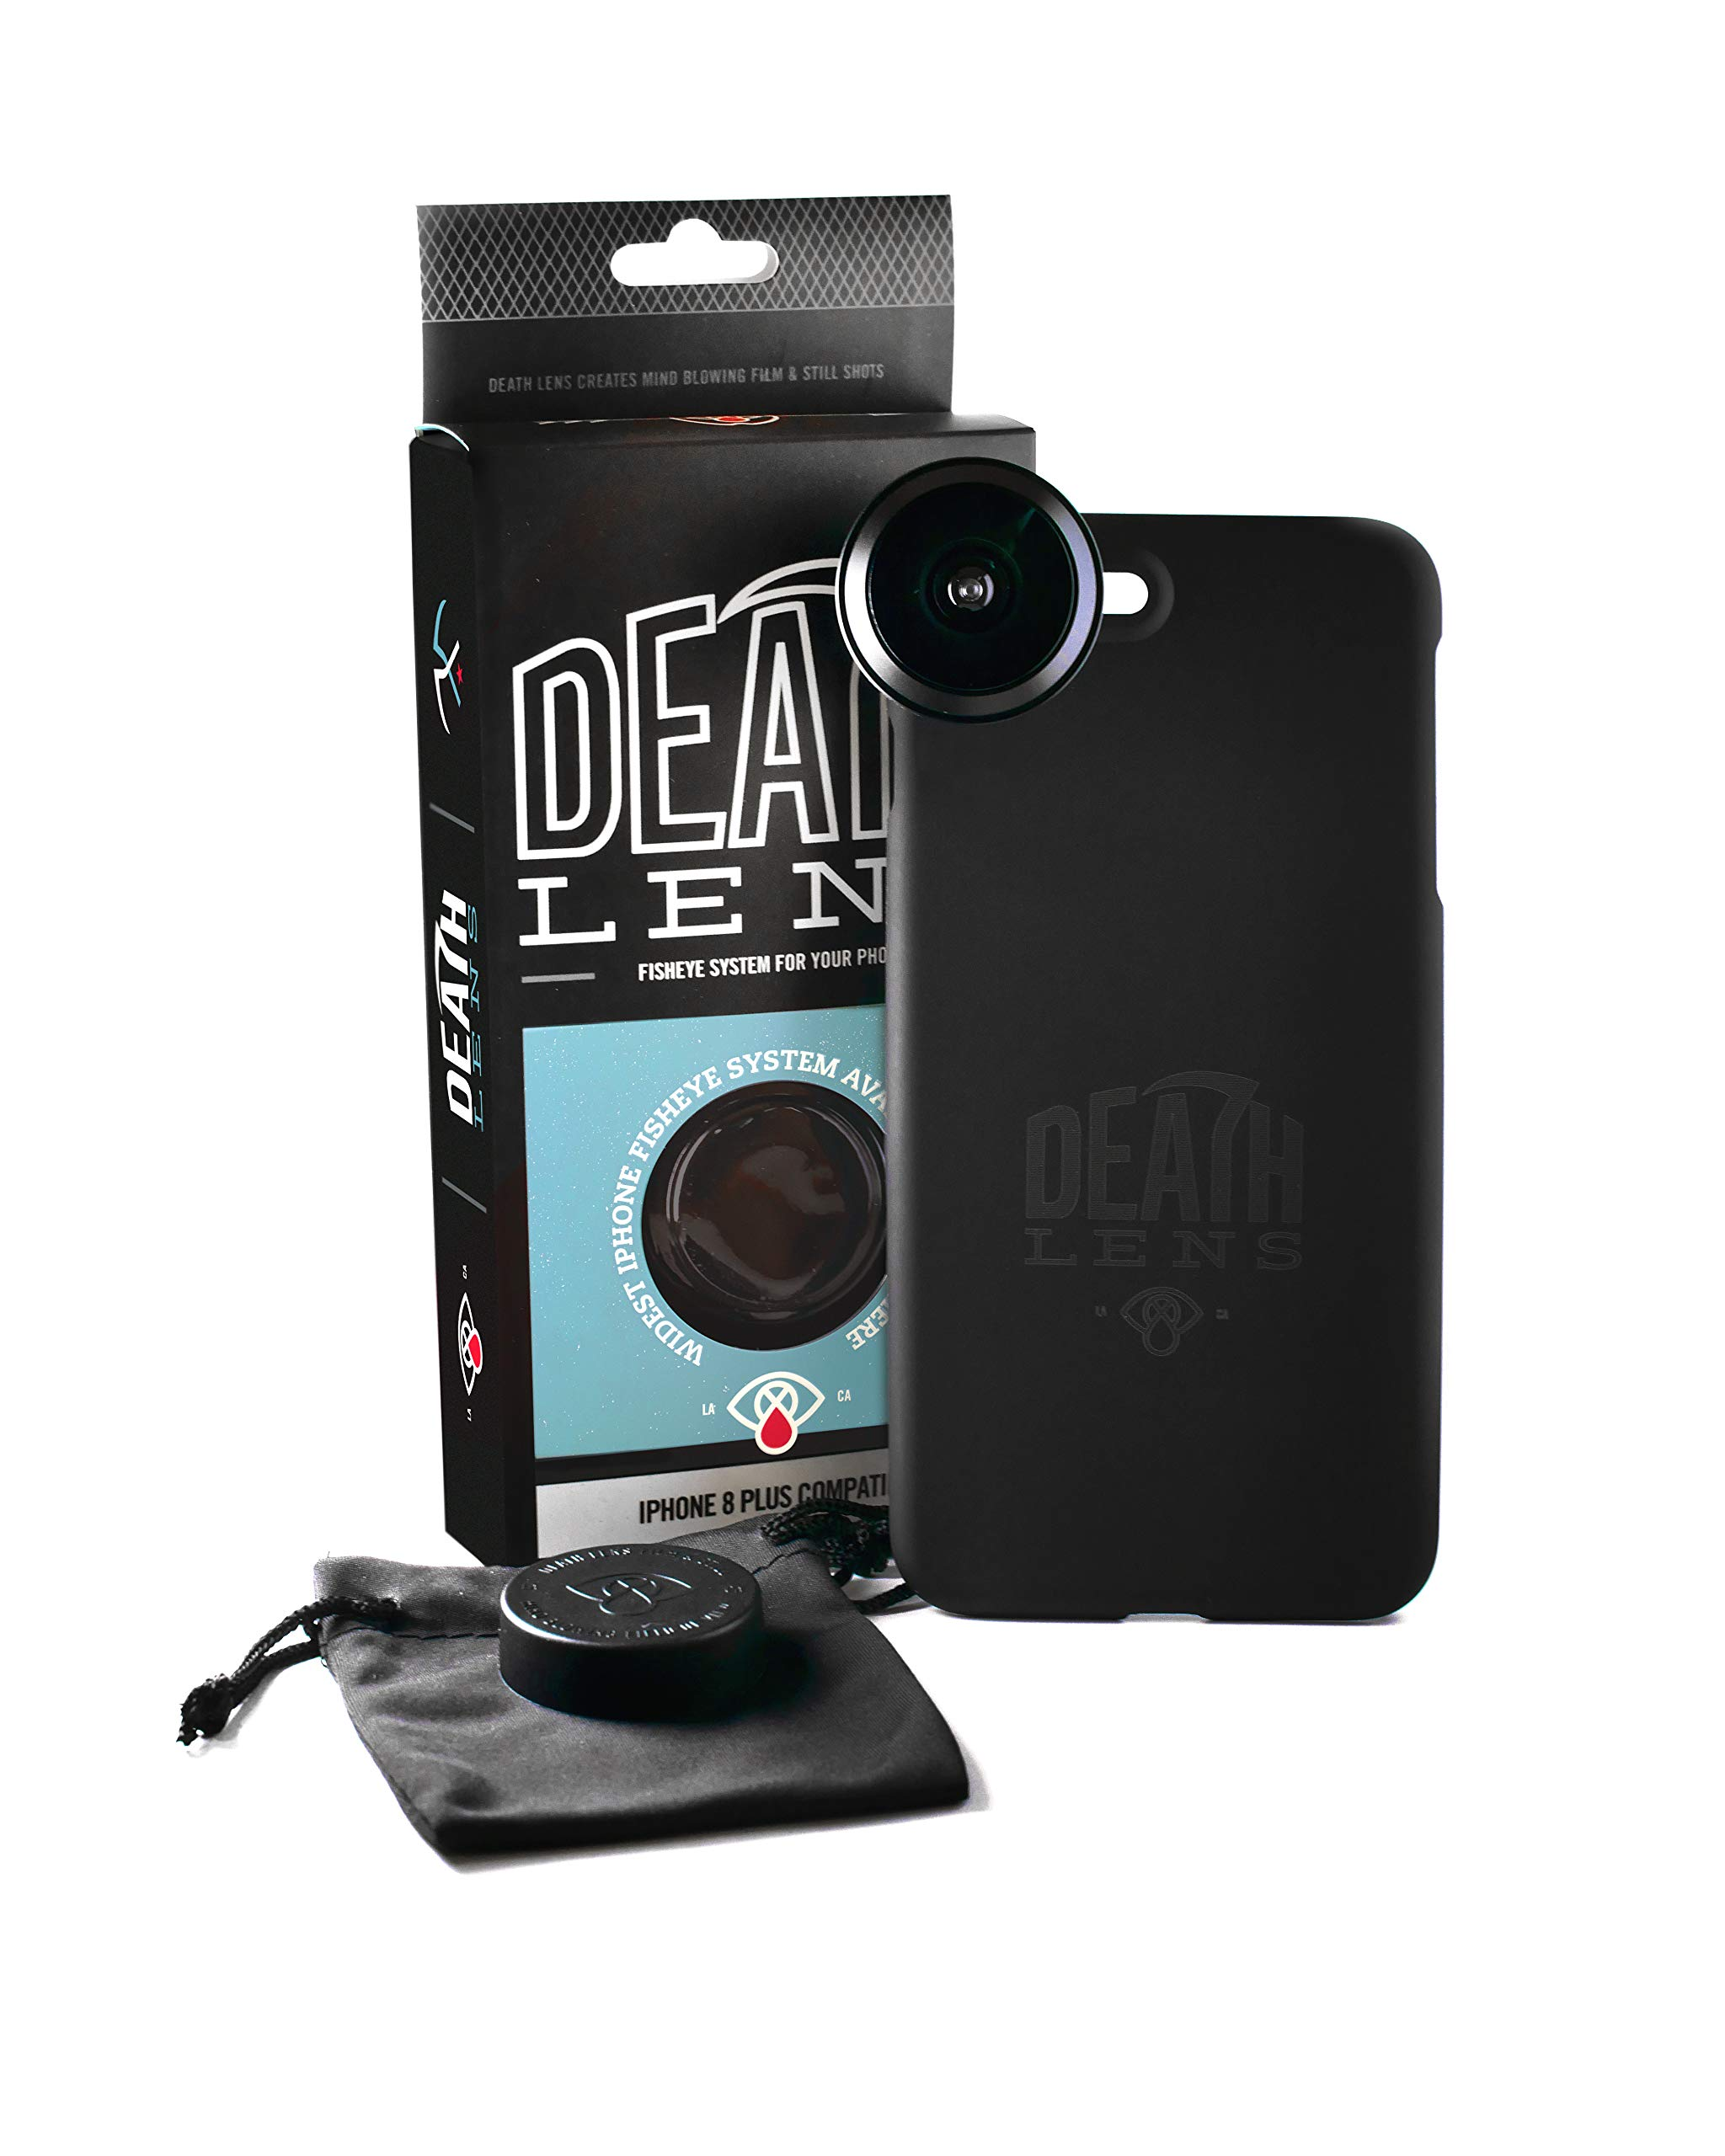 Death Lens iPhone 8 Plus Fisheye 200 Degree Professional Photo HD - Perfect for Skateboarding, Snowboarding, Skiing, and Traveling by DEATH LENS